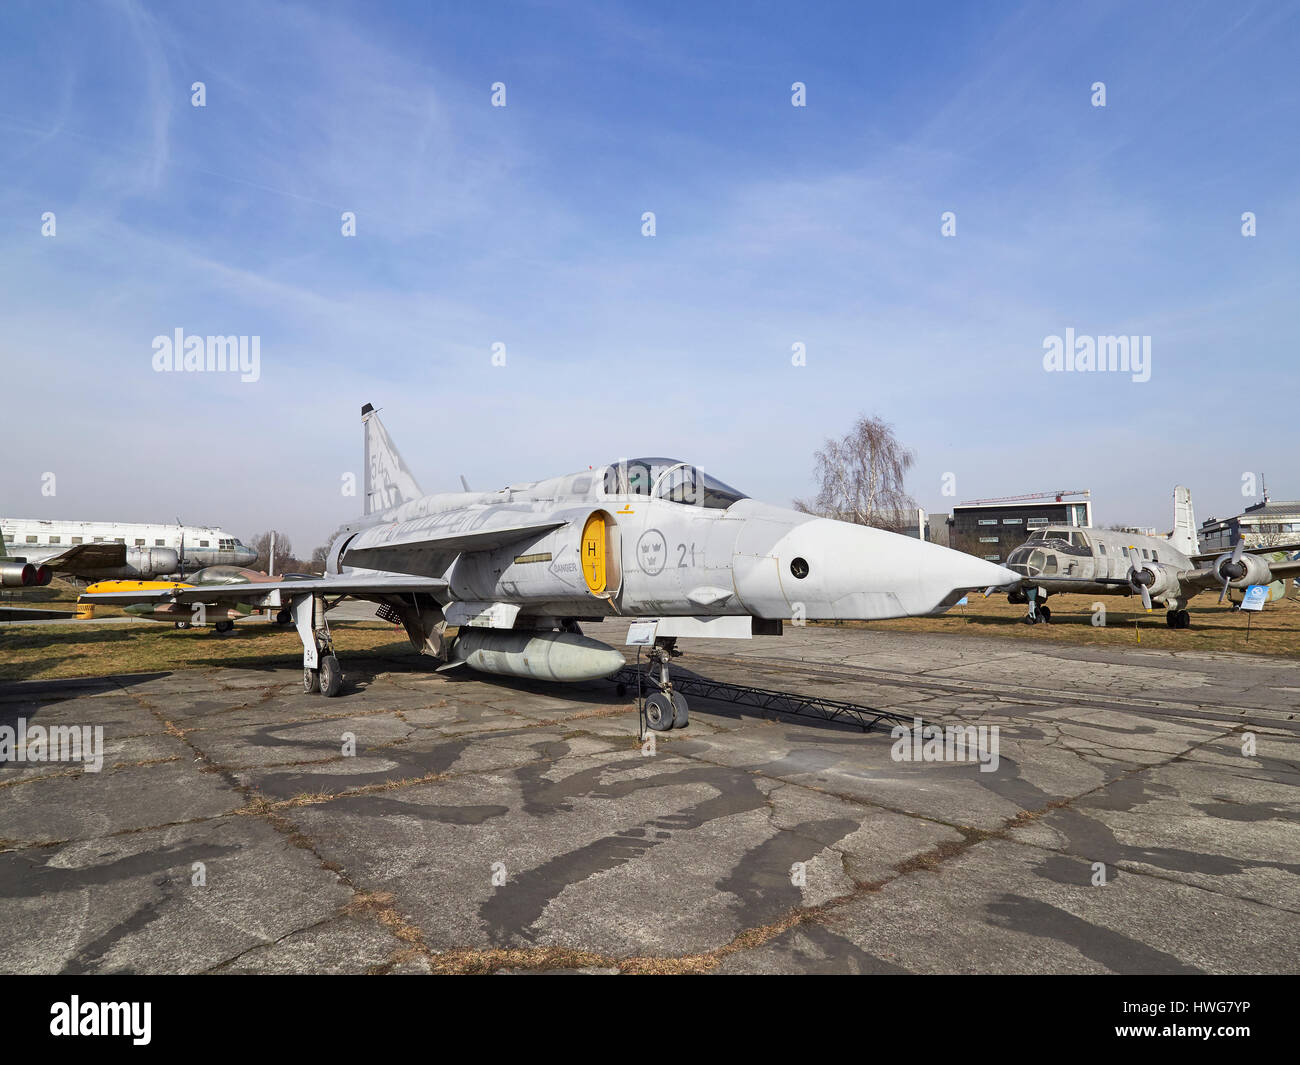 Swedish Saab 37 Viggen delta wing with a canard at the Krakow Aviation museum in Poland - Stock Image